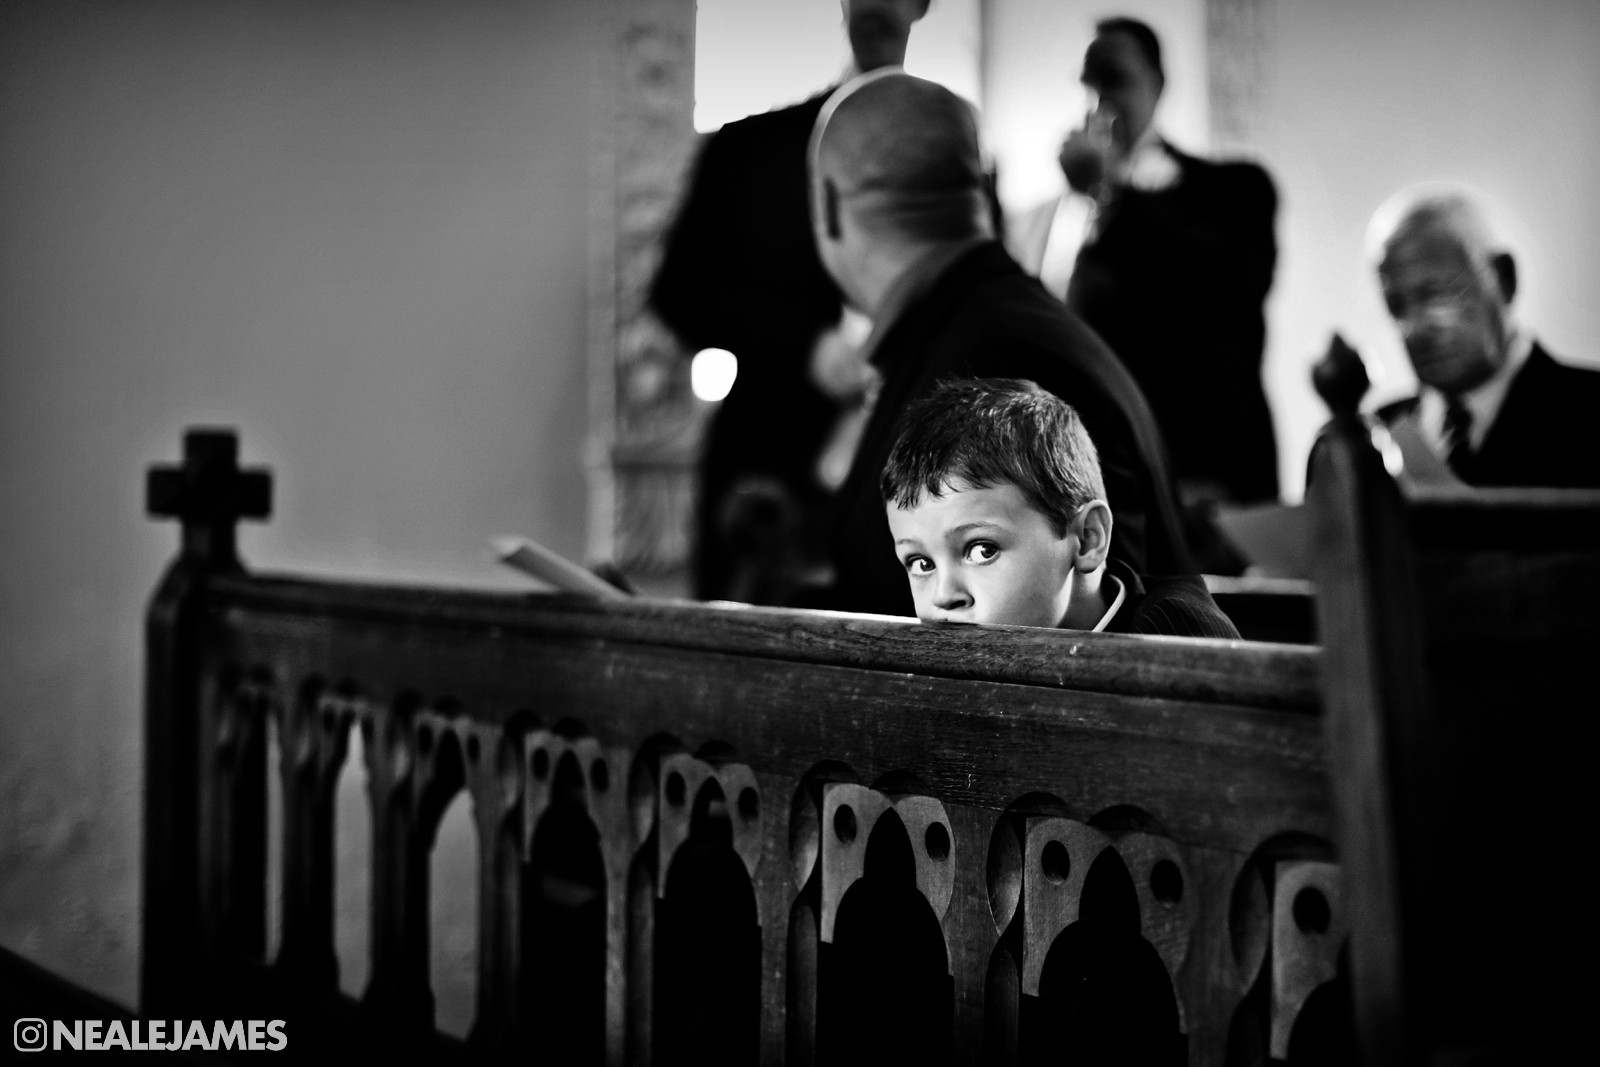 Black and white photo of a boy waiting for a wedding ceremony to start